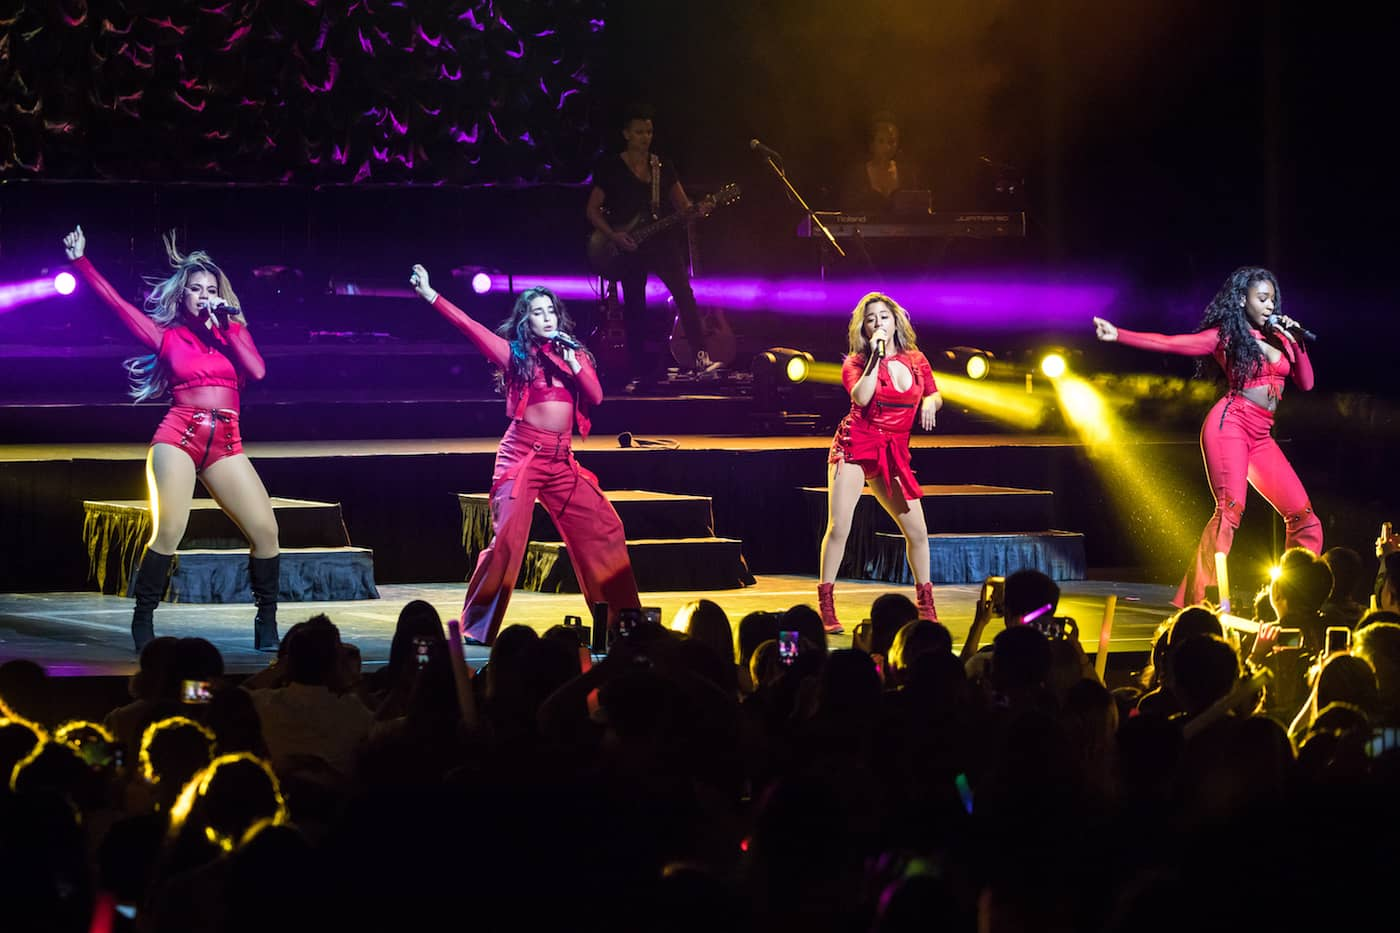 Fifth Harmony The 7/27 Tour – Live in Singapore 2017